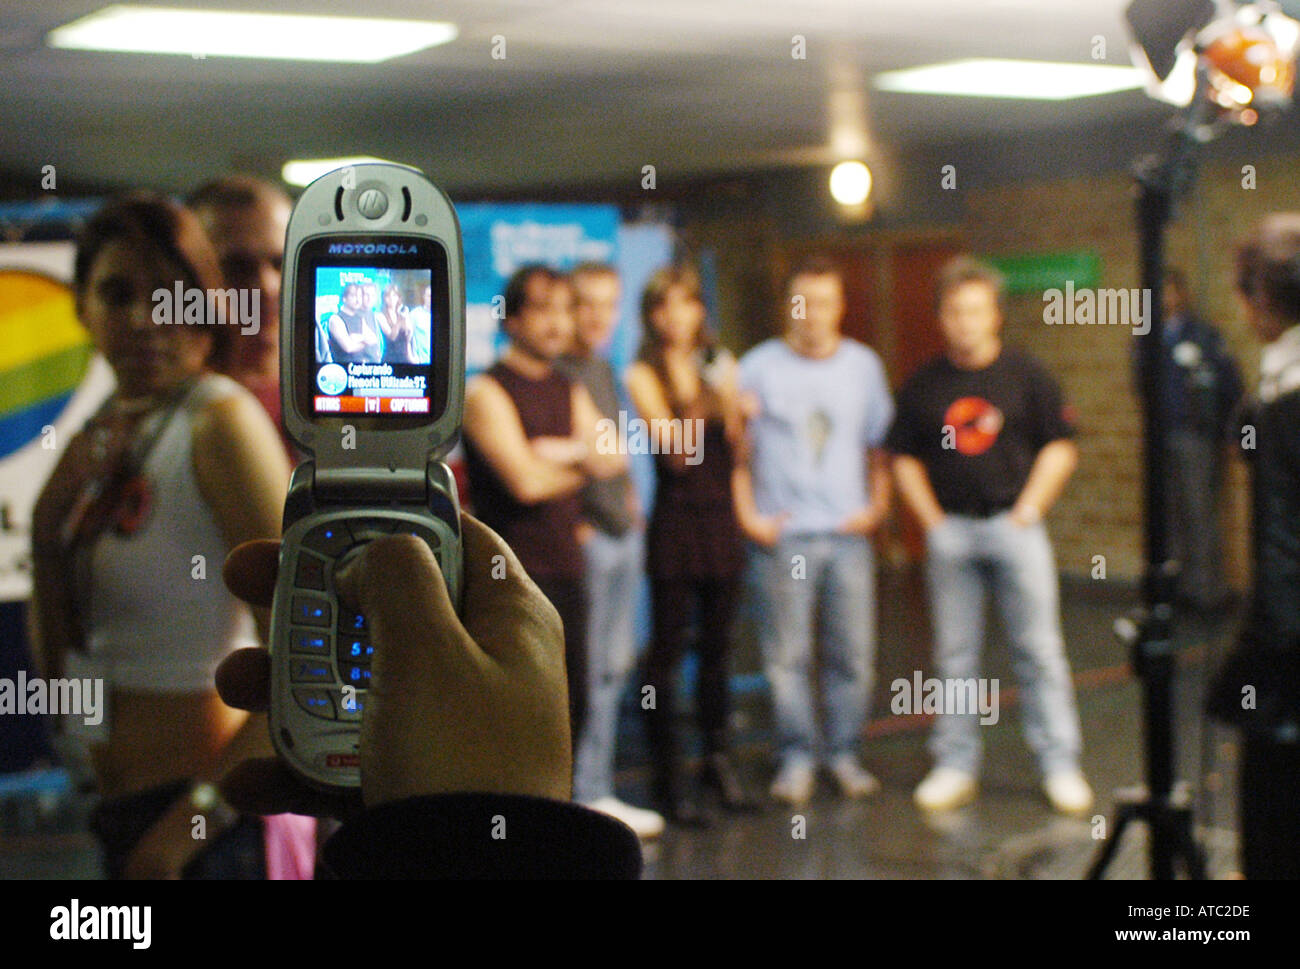 Taking a photograph of a popular spanish band called Hombres G with a celullar phone - Stock Image